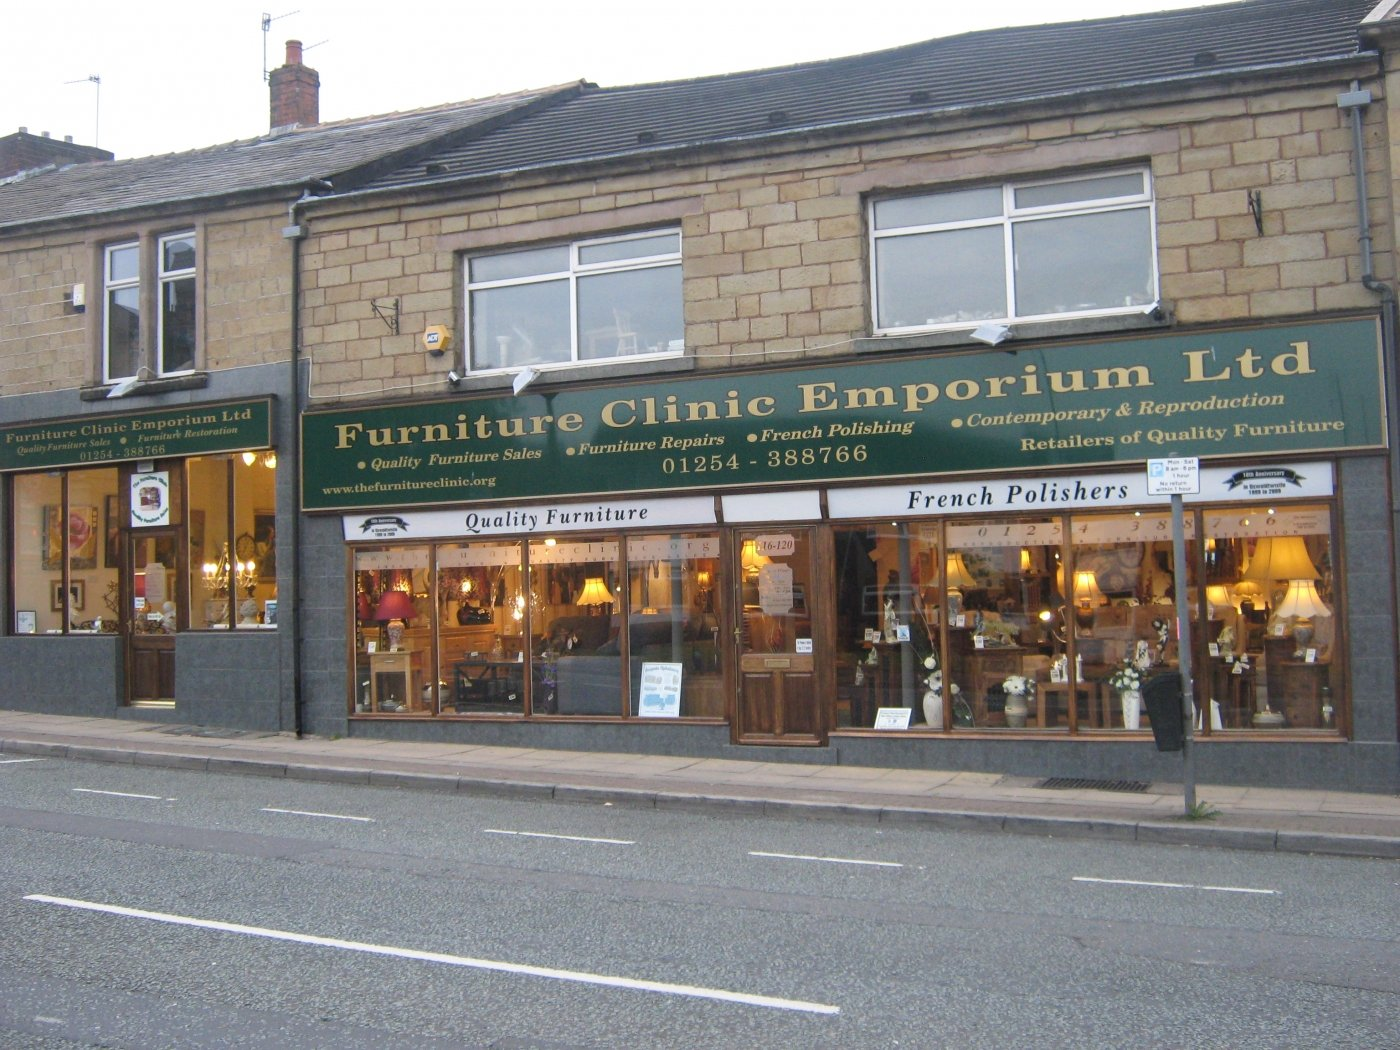 1 Of 10 Photos Pictures View Oswaldtwistle 39 S